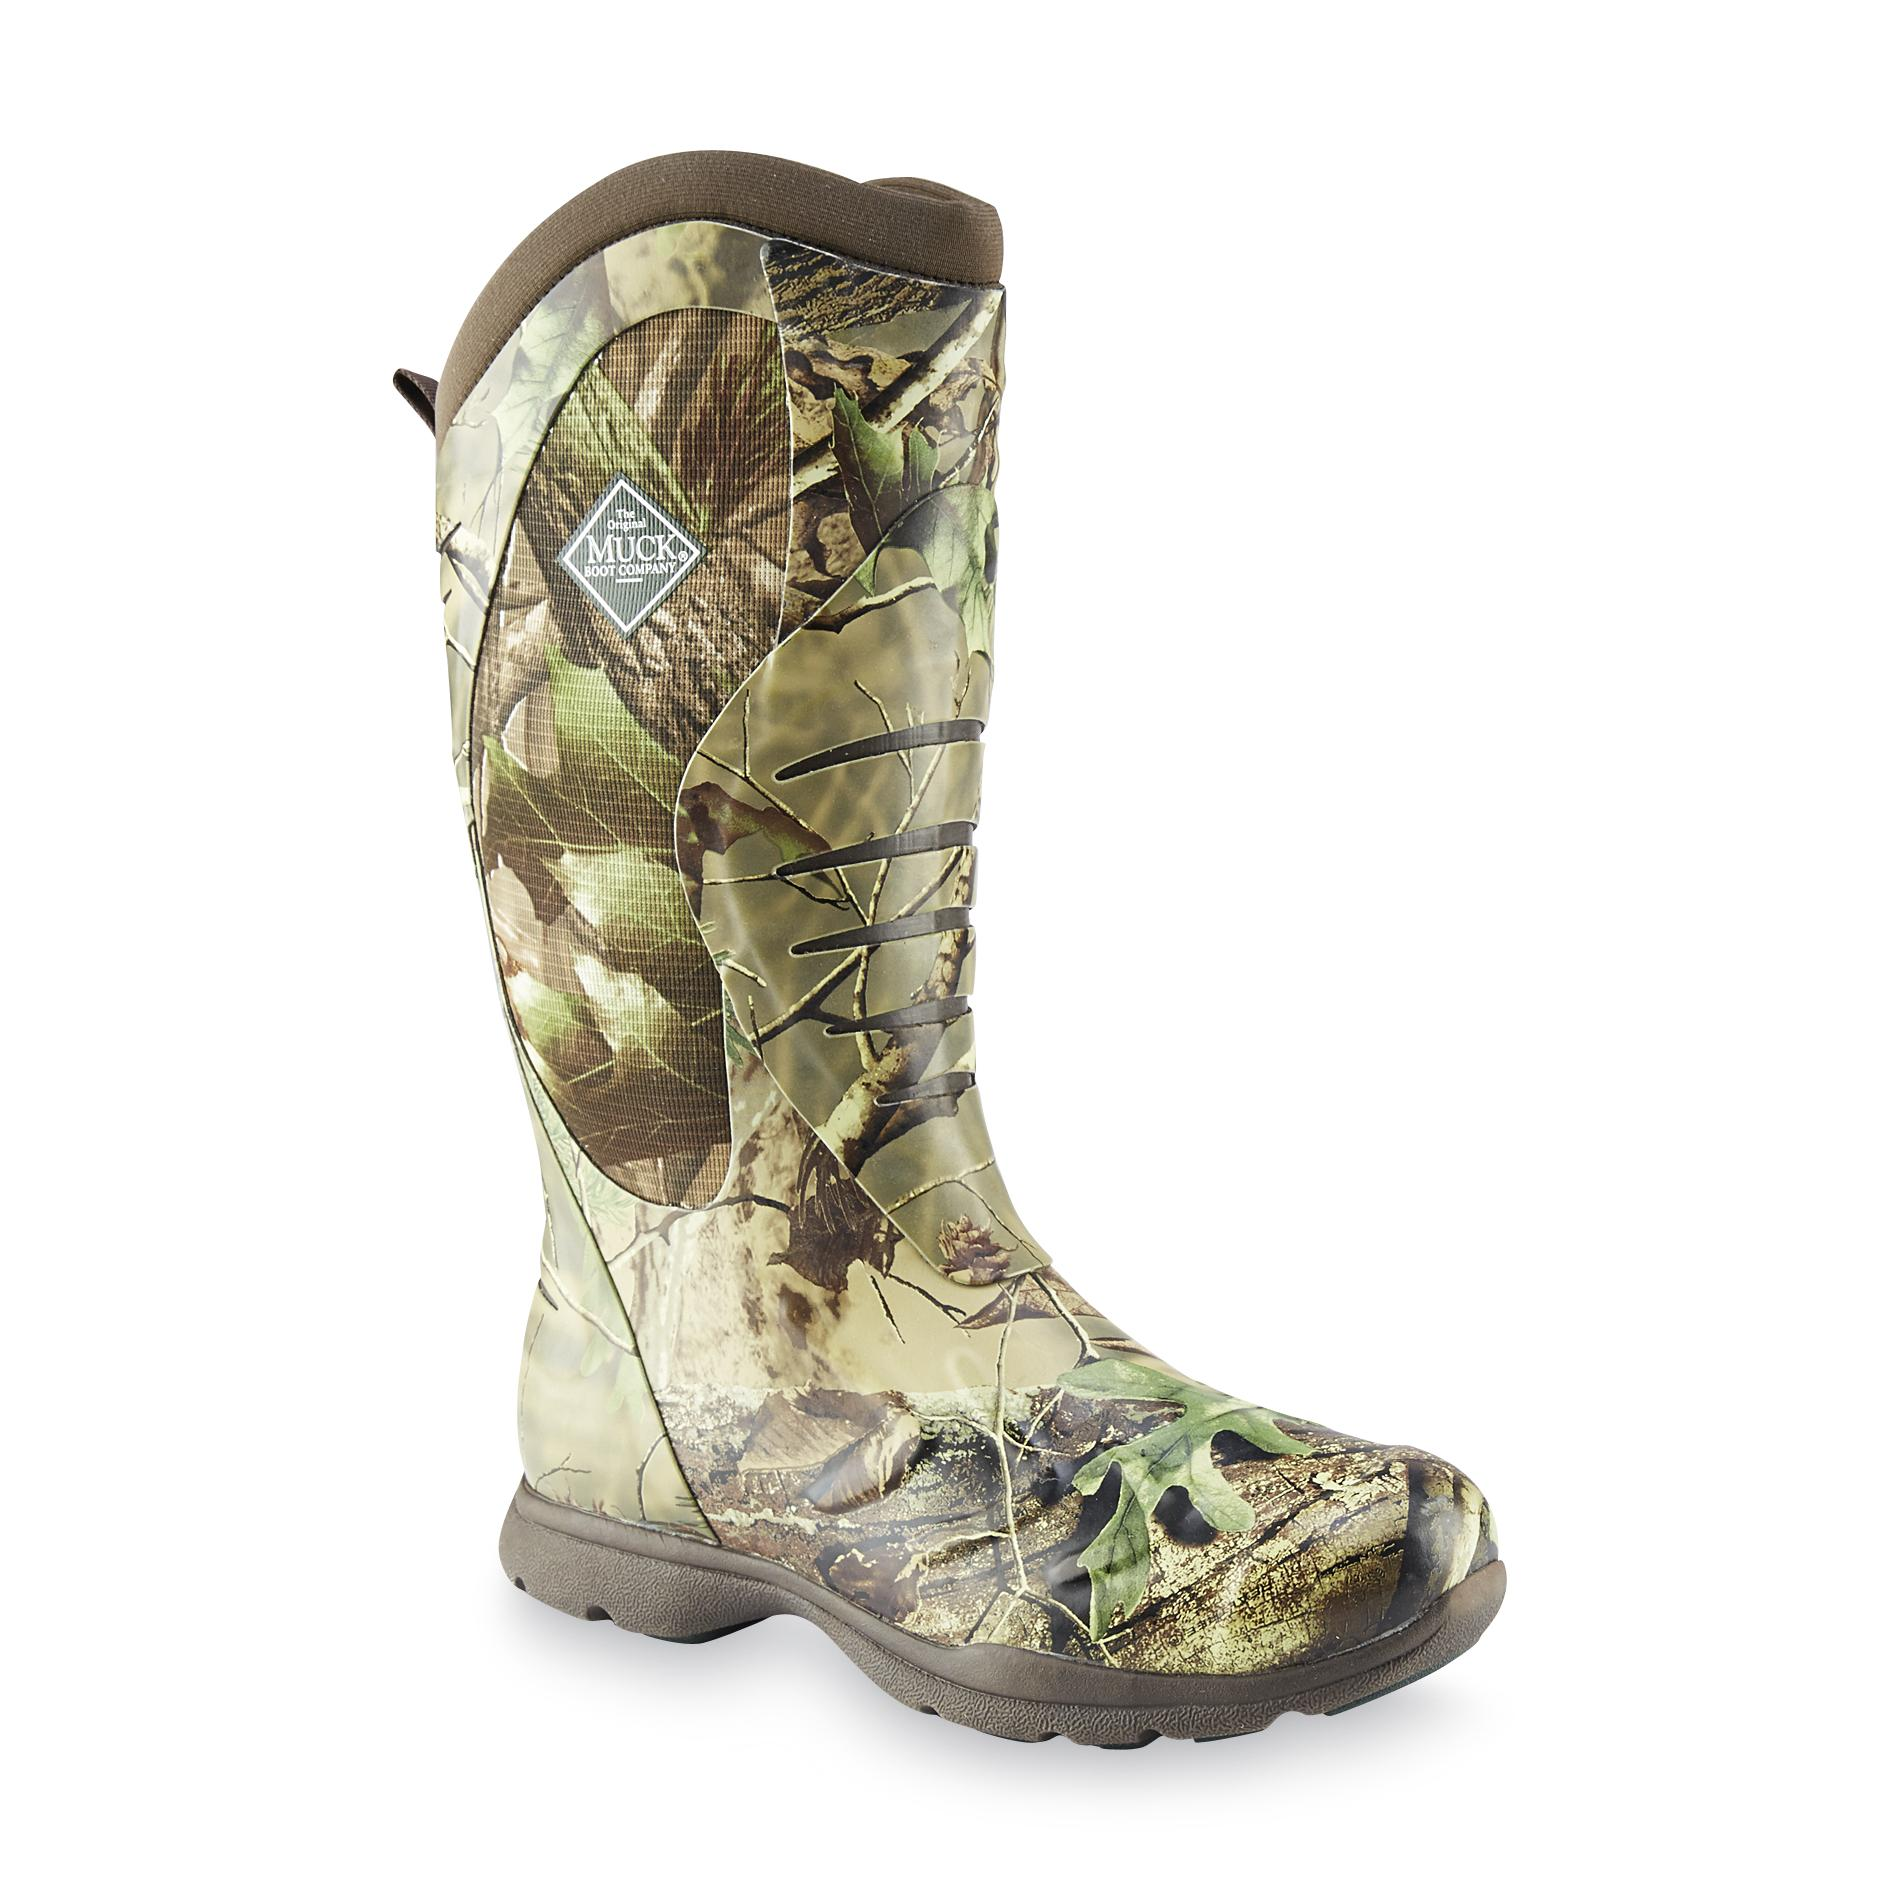 The Original Muck Boot Company Men's Pursuit Stealth Cool Camouflage Hunting Boot